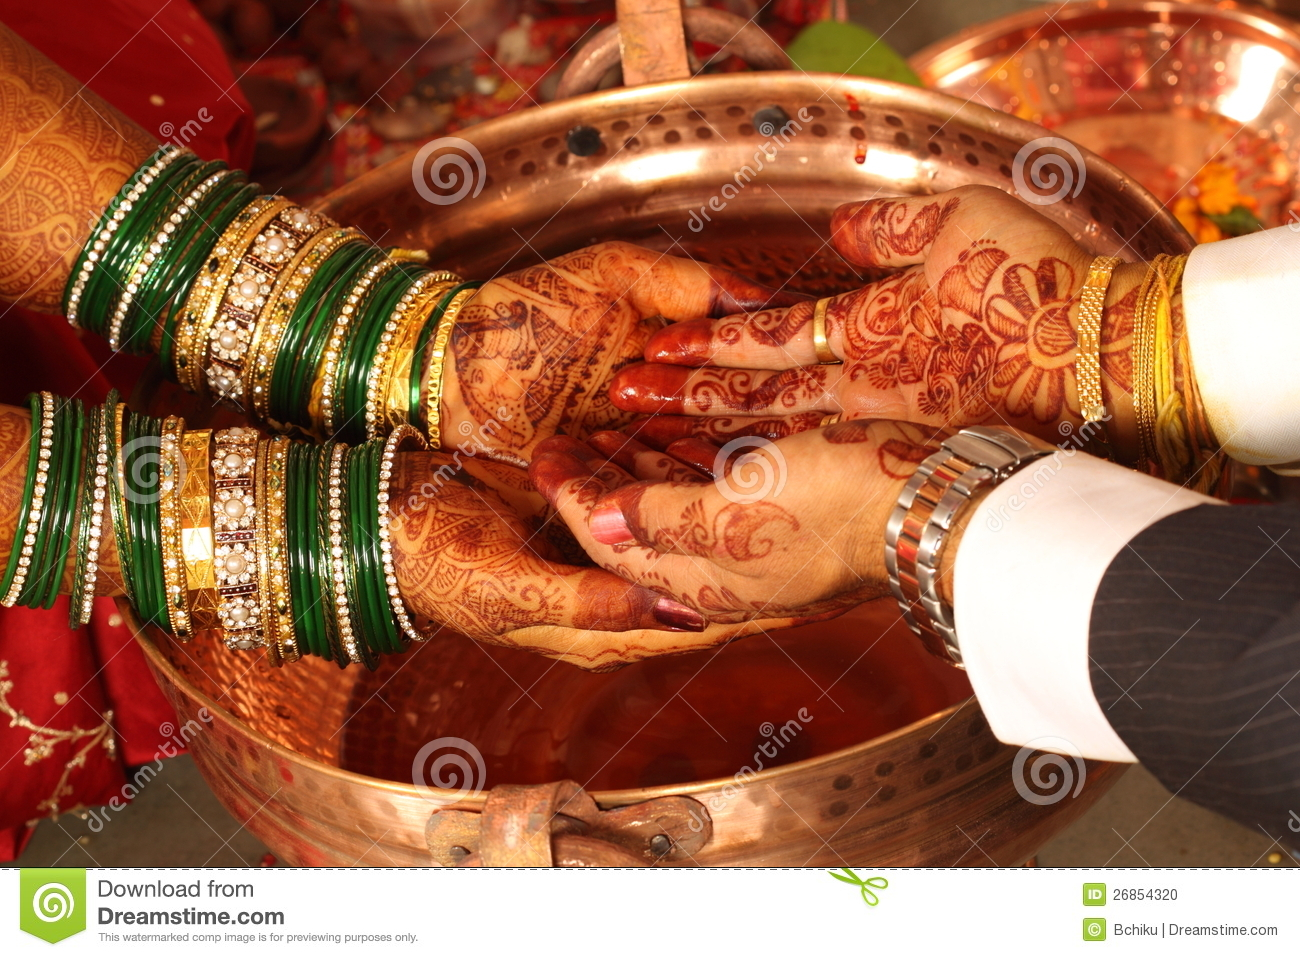 The hands of a bride and groom at an Indian wedding.